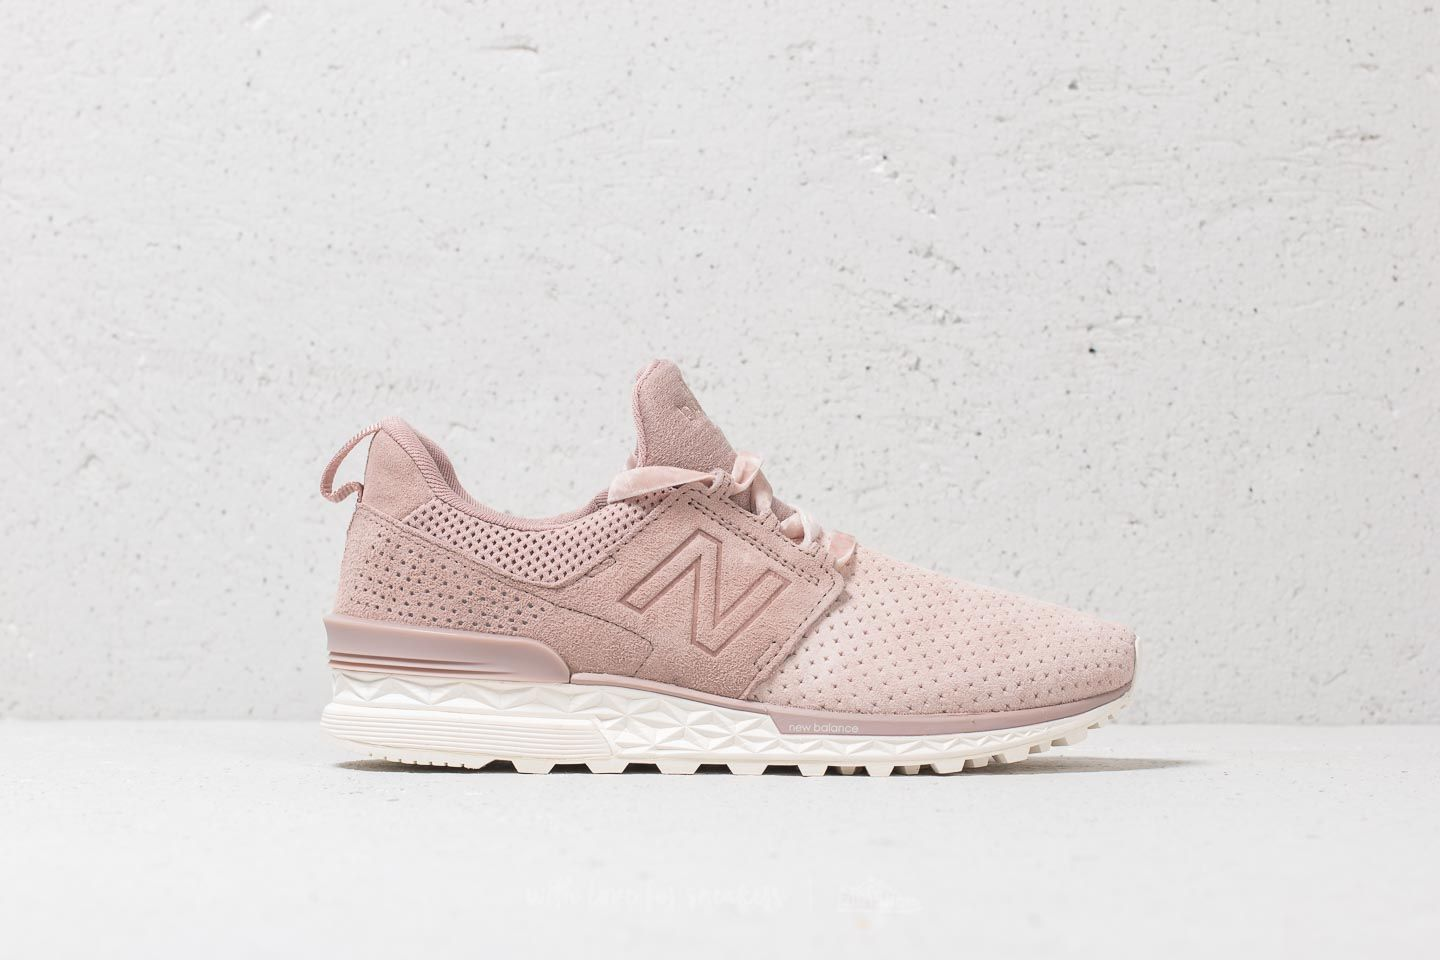 73de9a5040c New Balance 574 Pink  White at a great price £76 buy at Footshop